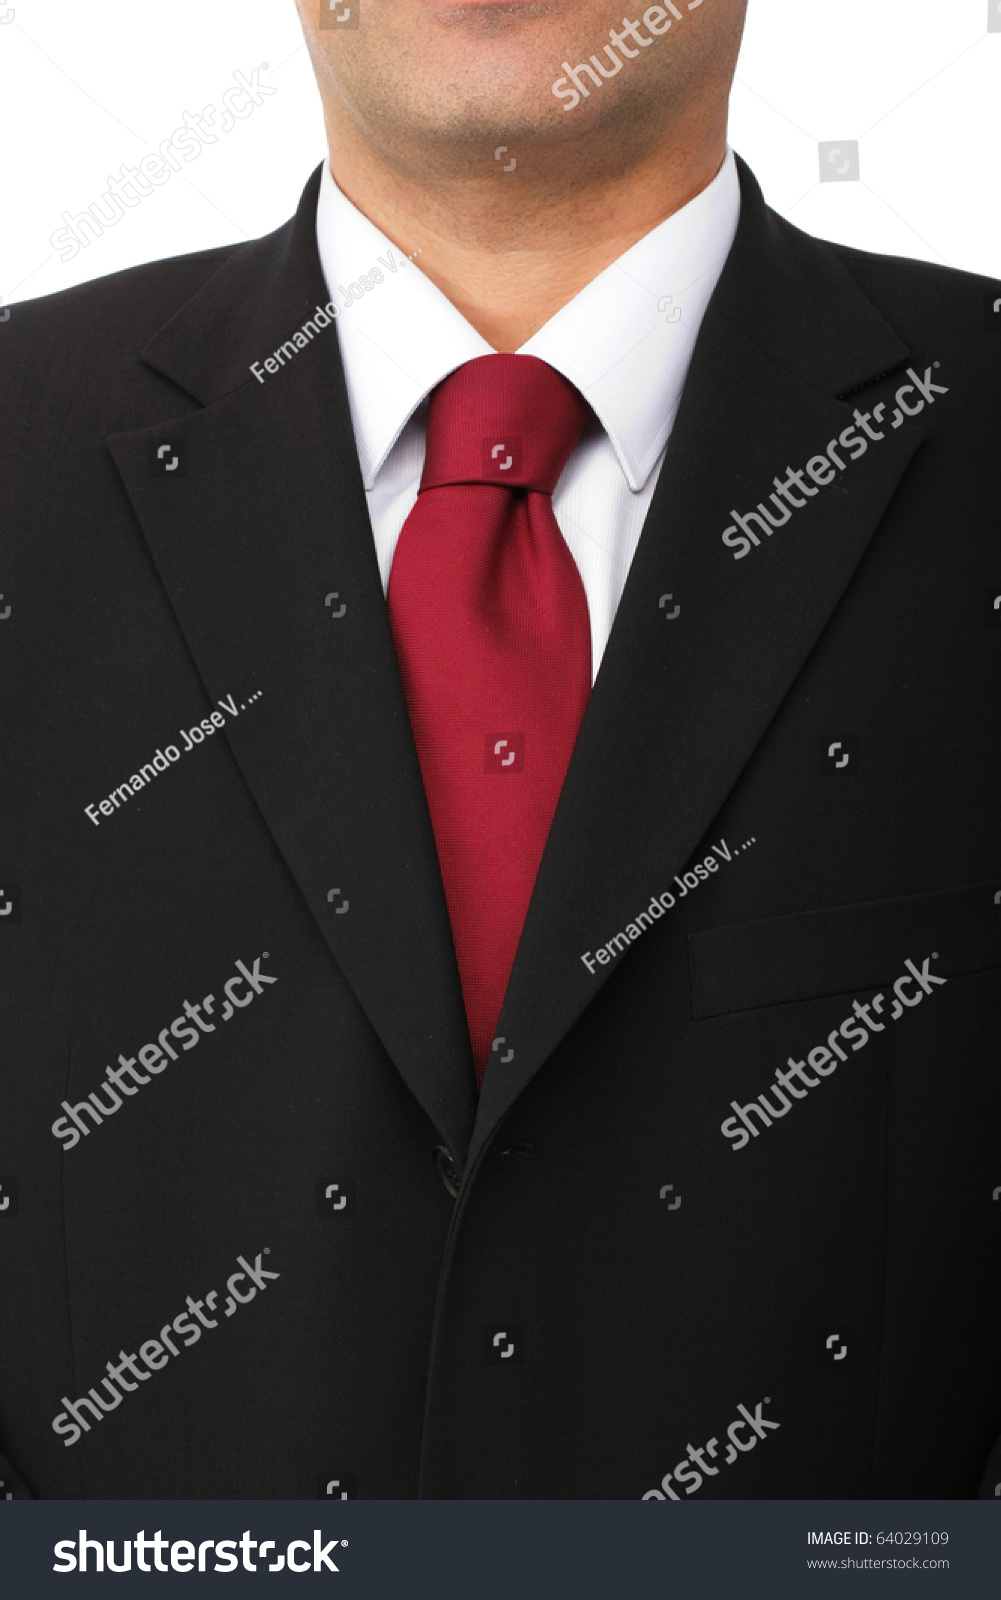 Royalty-free Close up of a businessman wearing a… #64029109 Stock ...